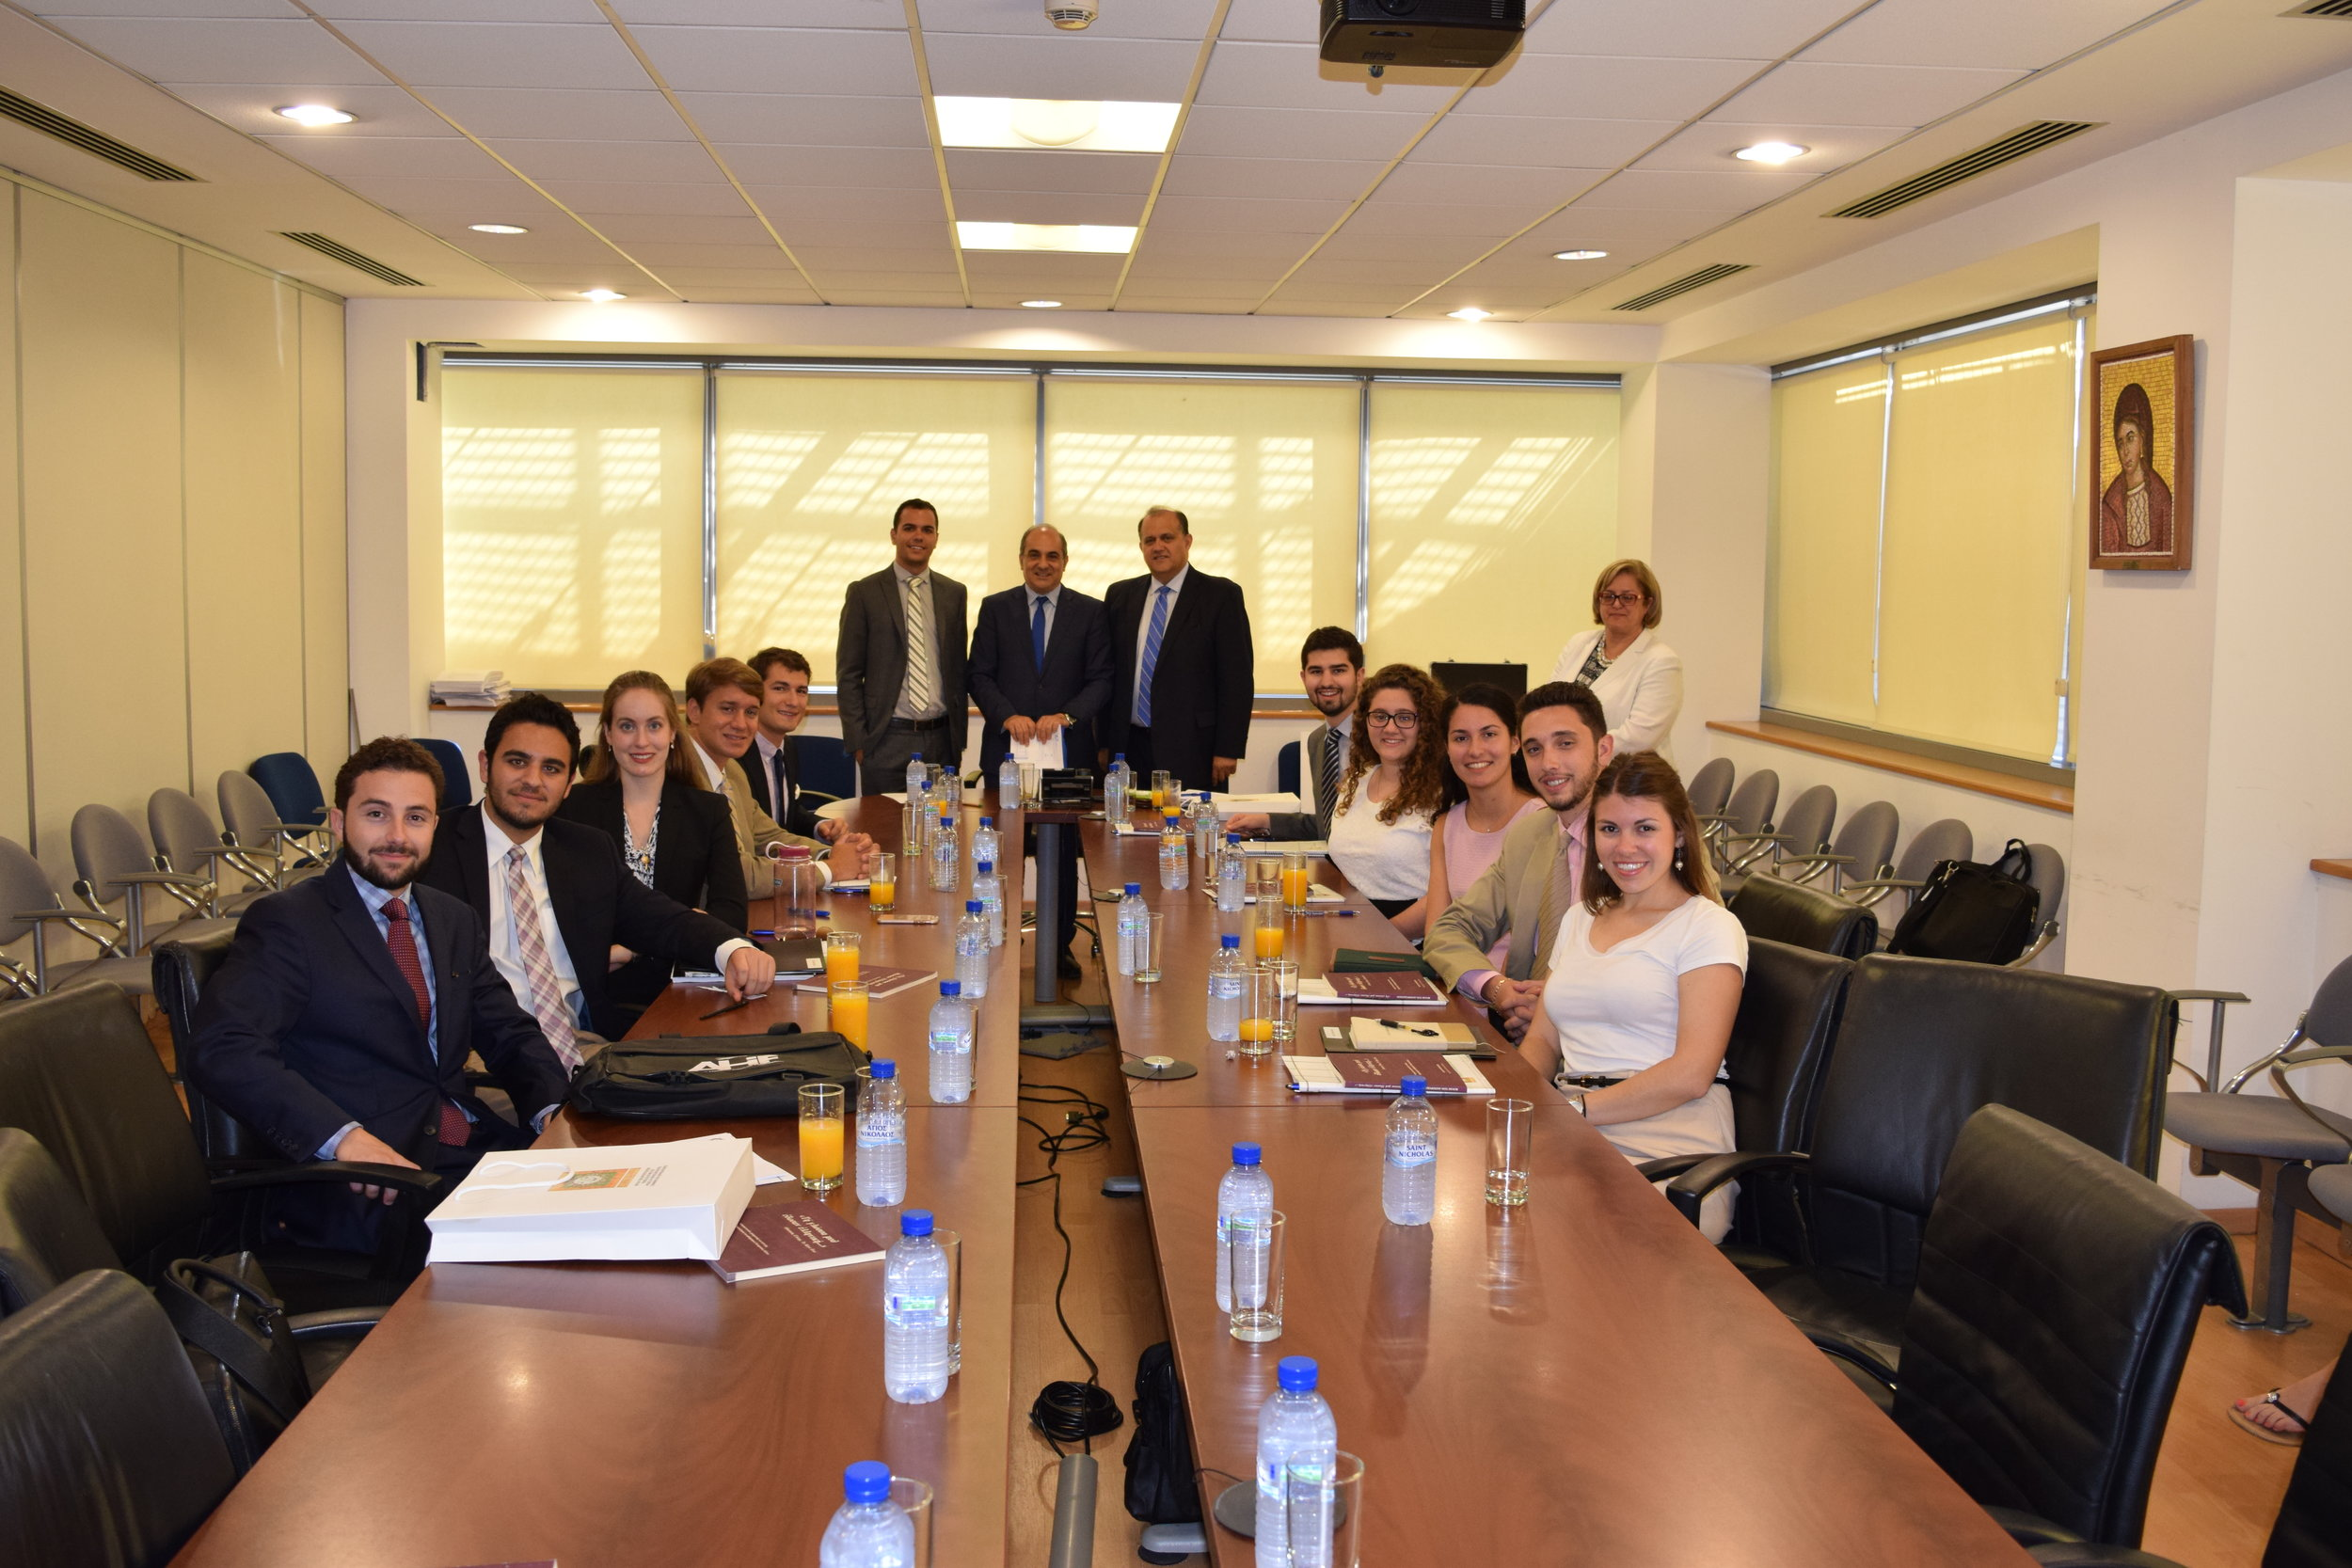 President of the House of representatives Demetris Syllouris briefs students at the Cypriot House of Representatives.